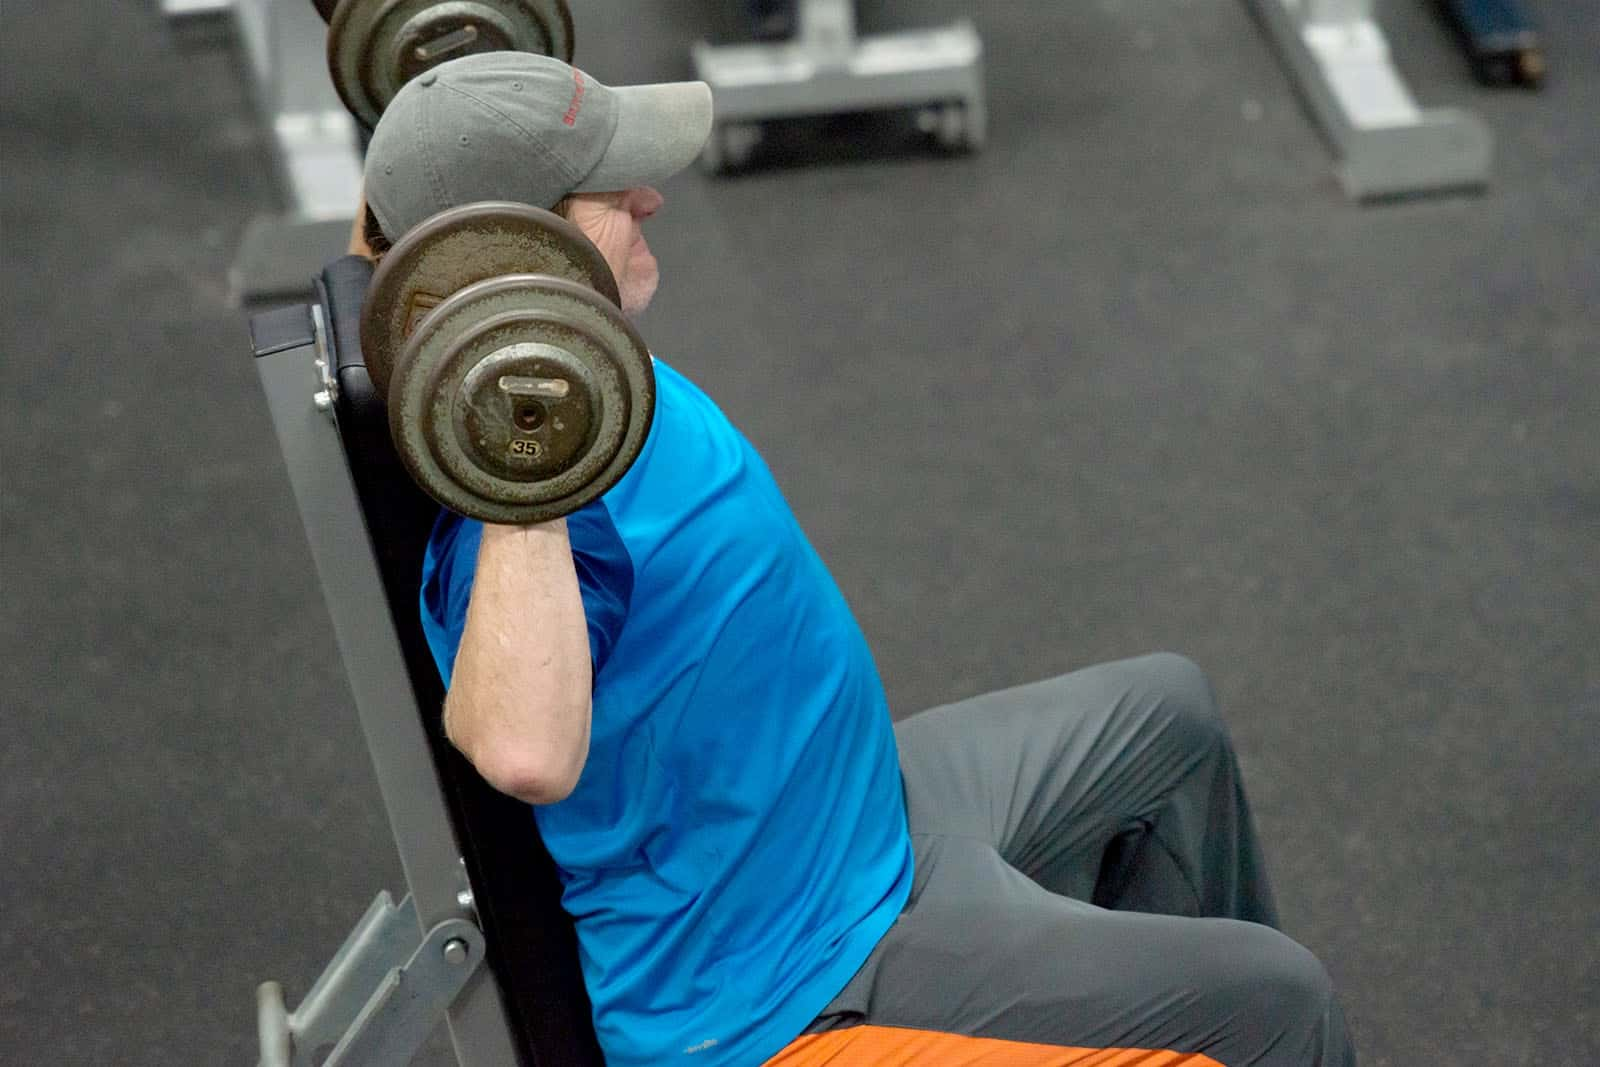 Man in blue shirt lifting weights while sitting